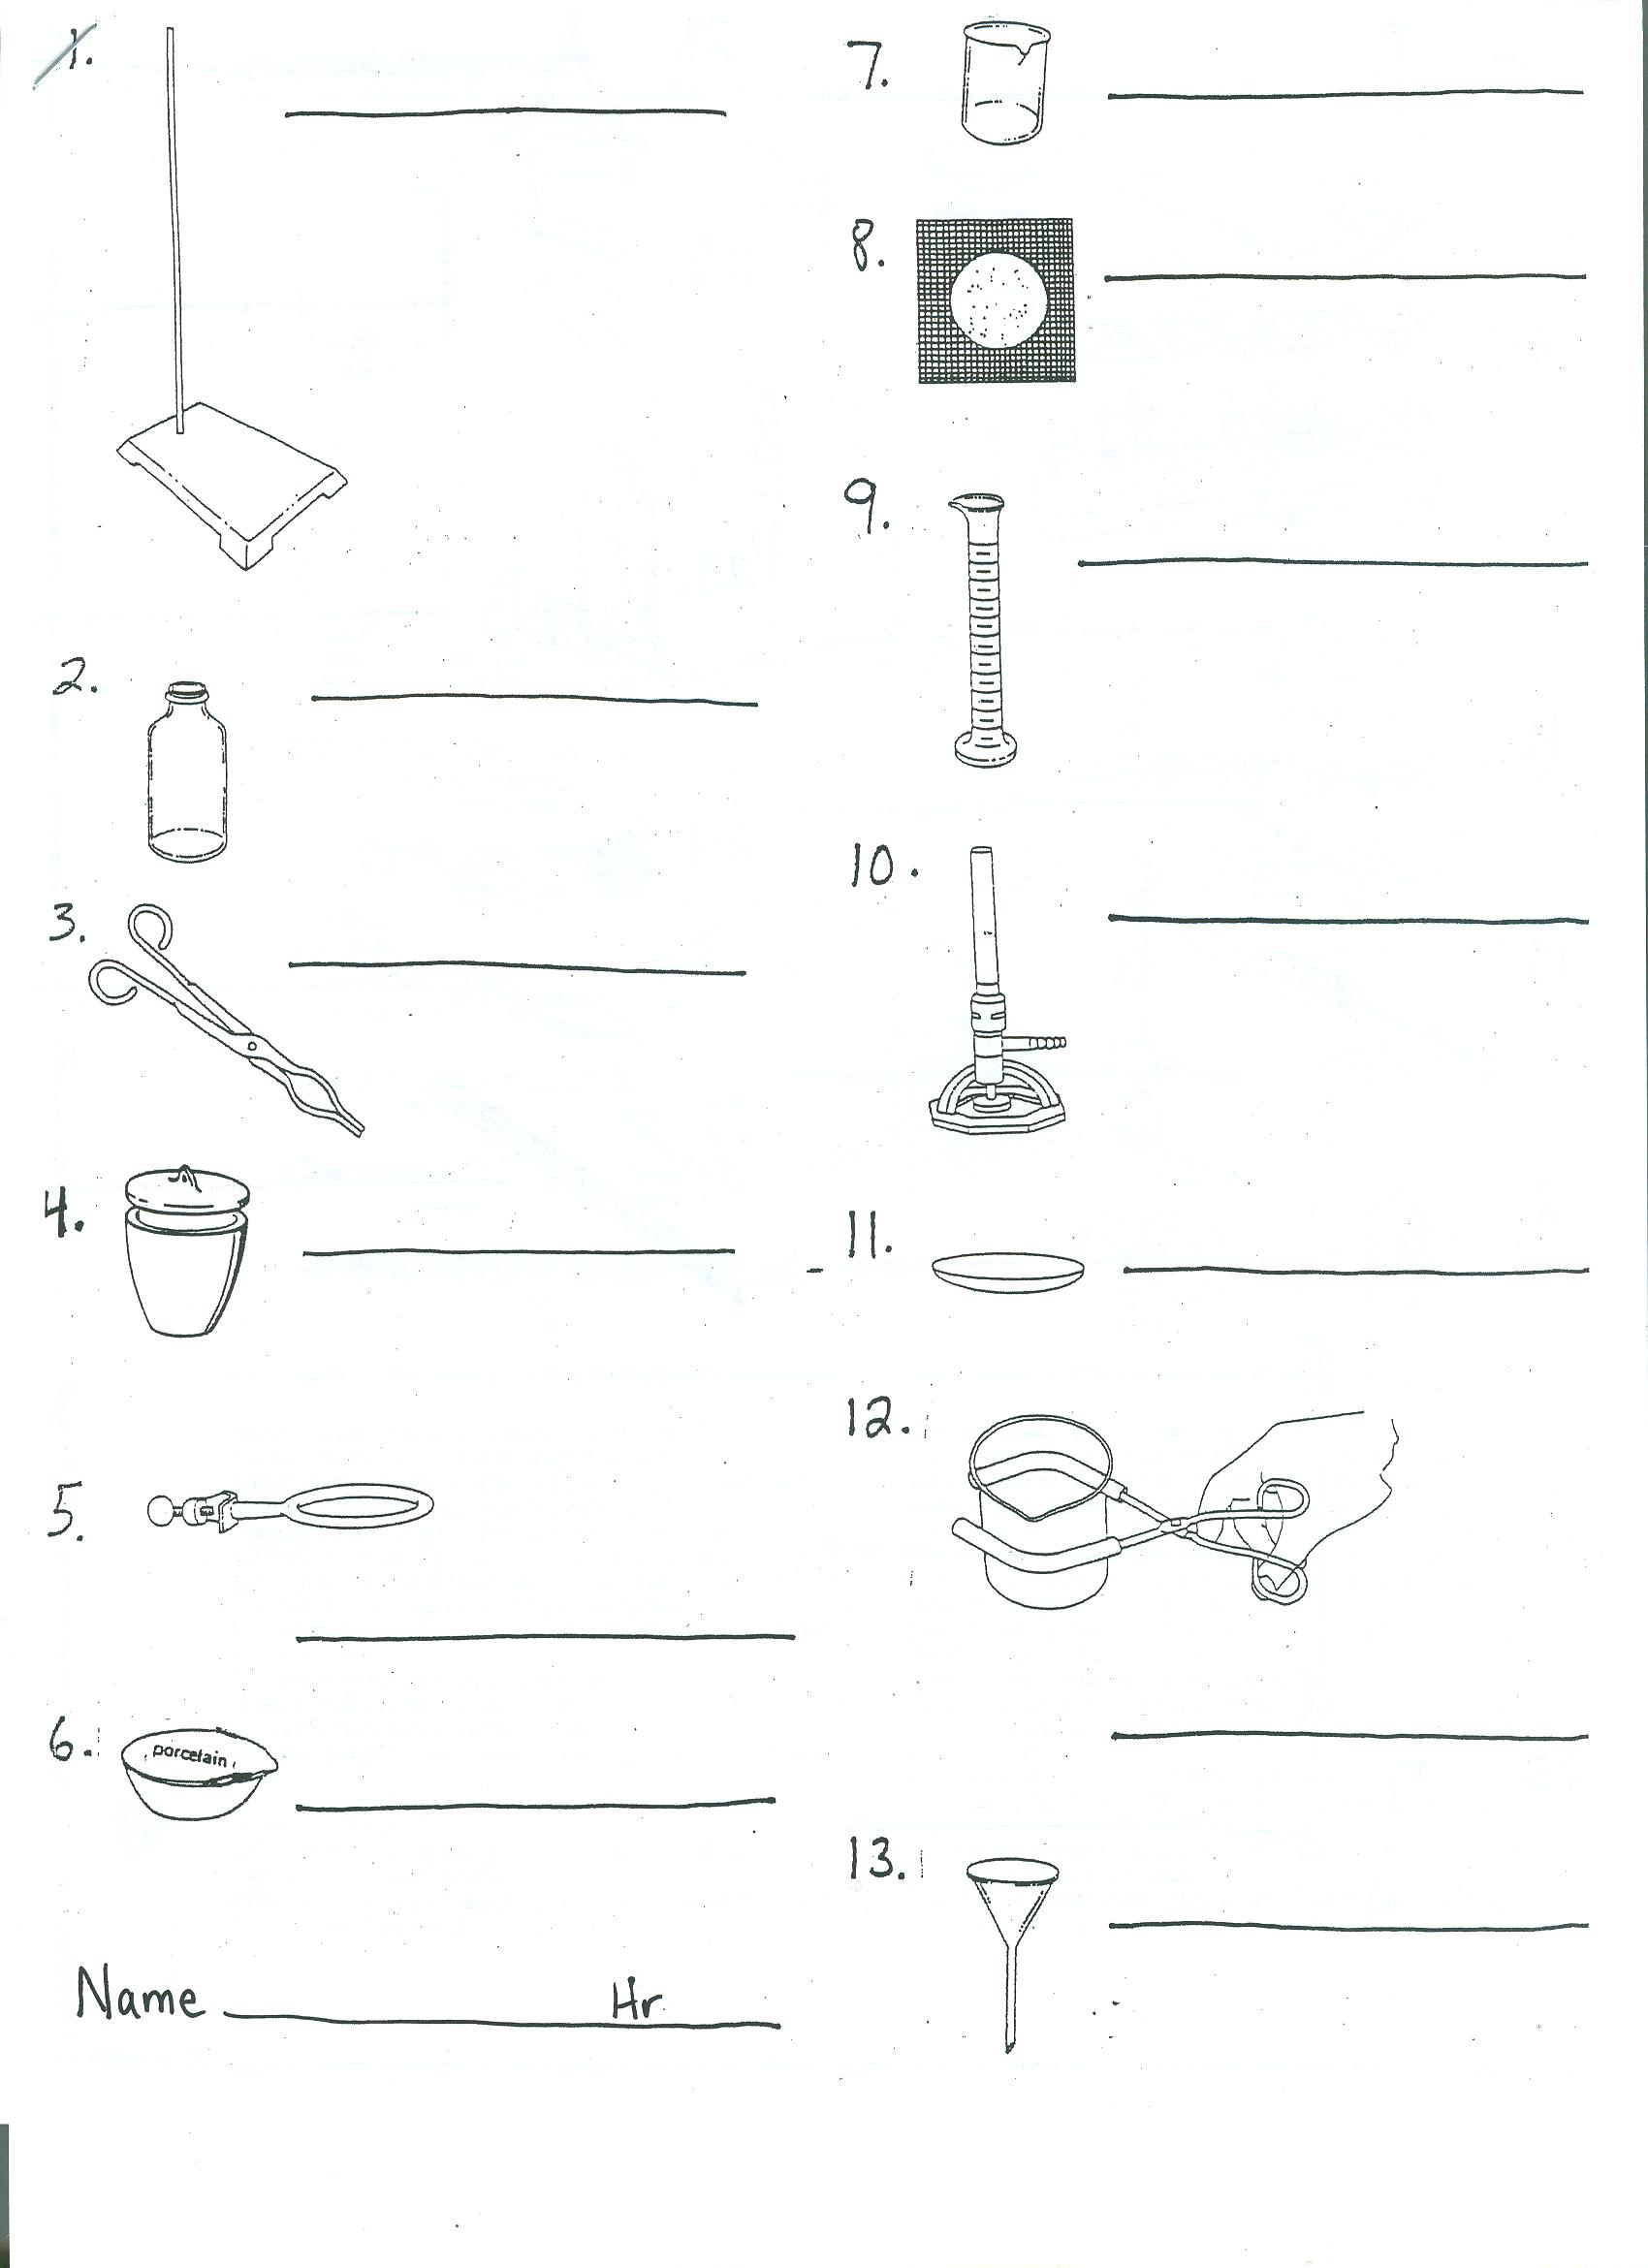 Printables Laboratory Equipment Worksheet science lab tools worksheet versaldobip equipment davezan